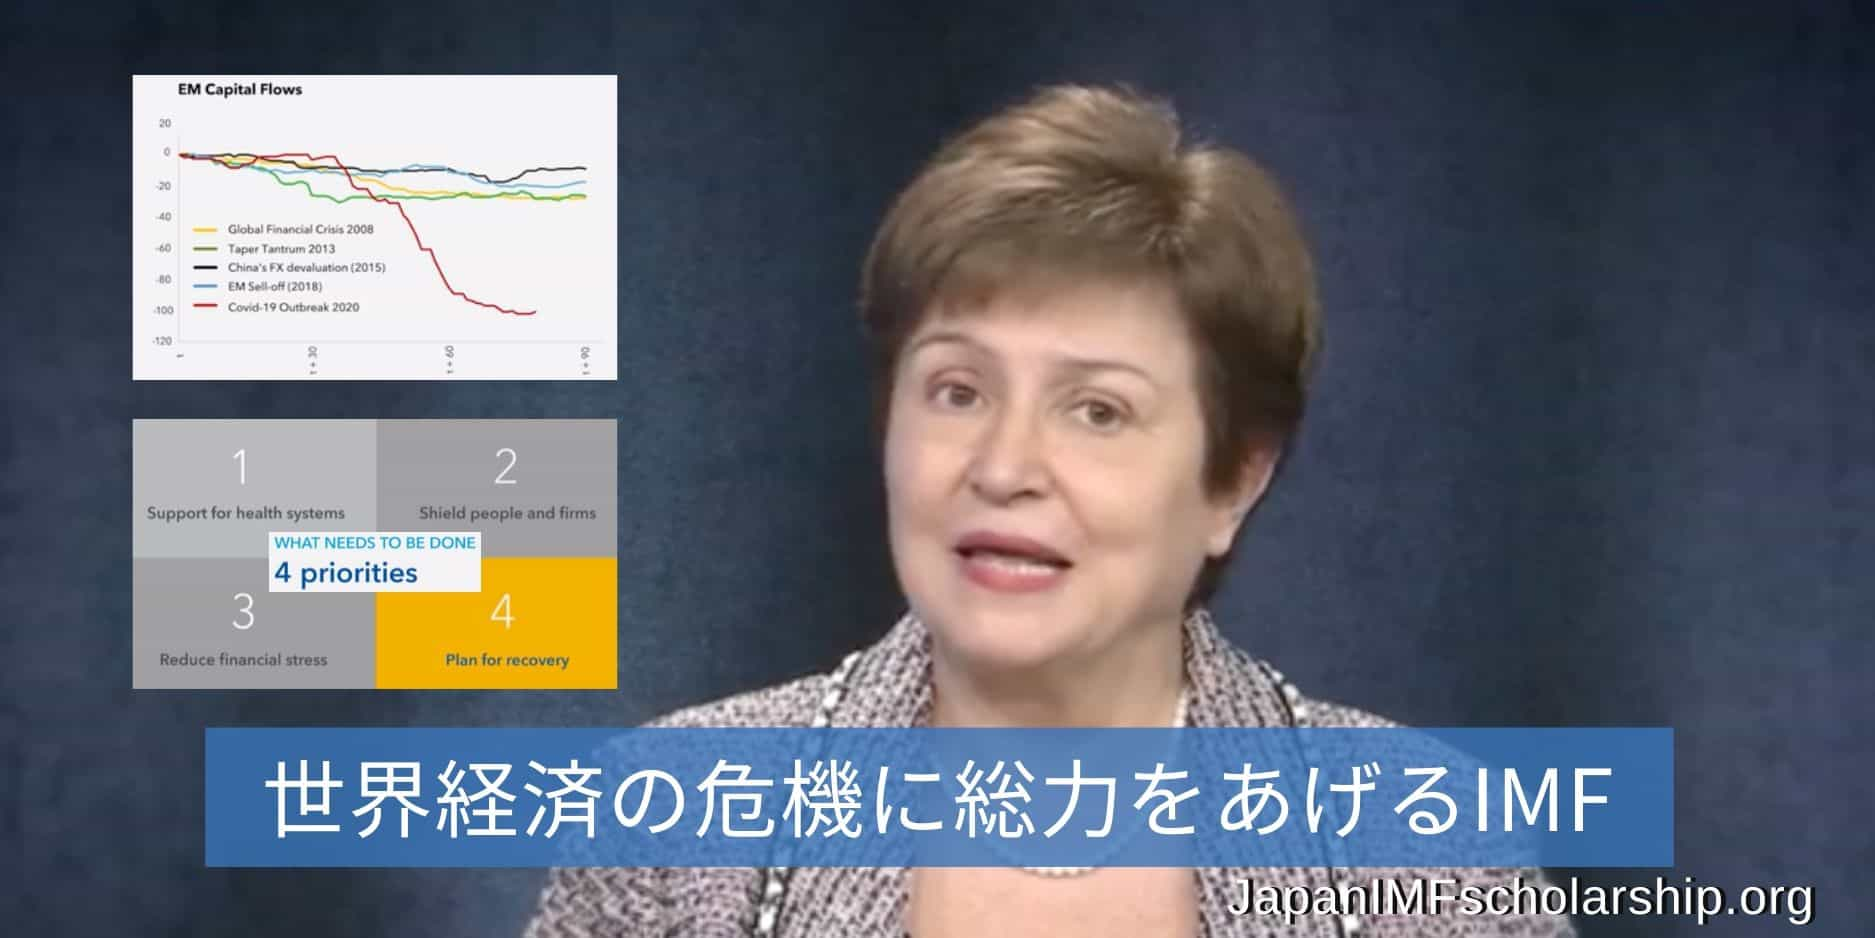 jisp web-fb imf speech by kristalina georgieva about priorities for the global economy facing to covid-19